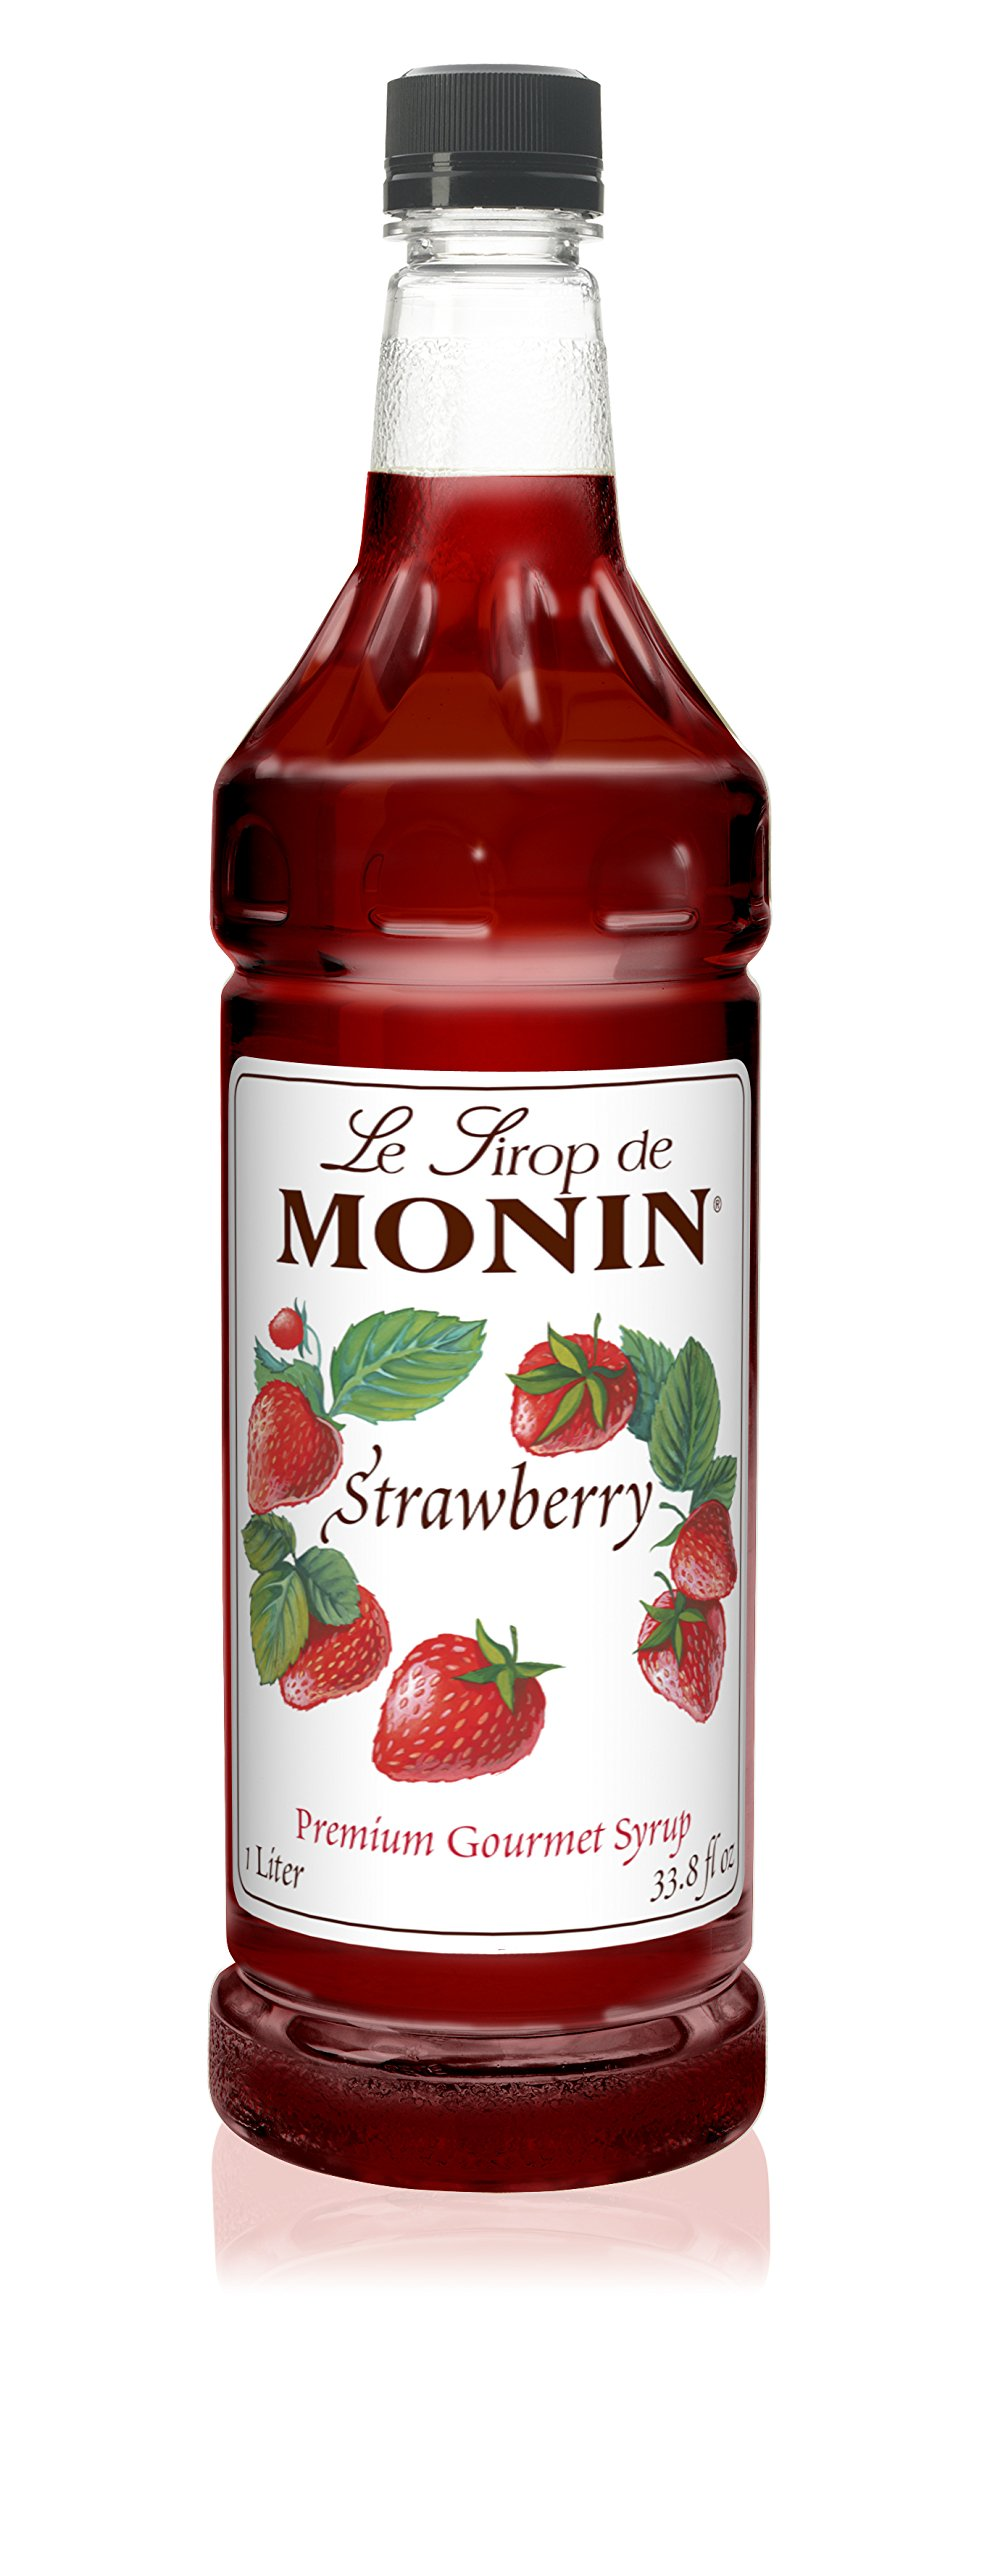 Monin - Strawberry Syrup, Mild and Sweet, Great for Cocktails and Teas, Gluten-Free, Vegan, Non-GMO (1 Liter)